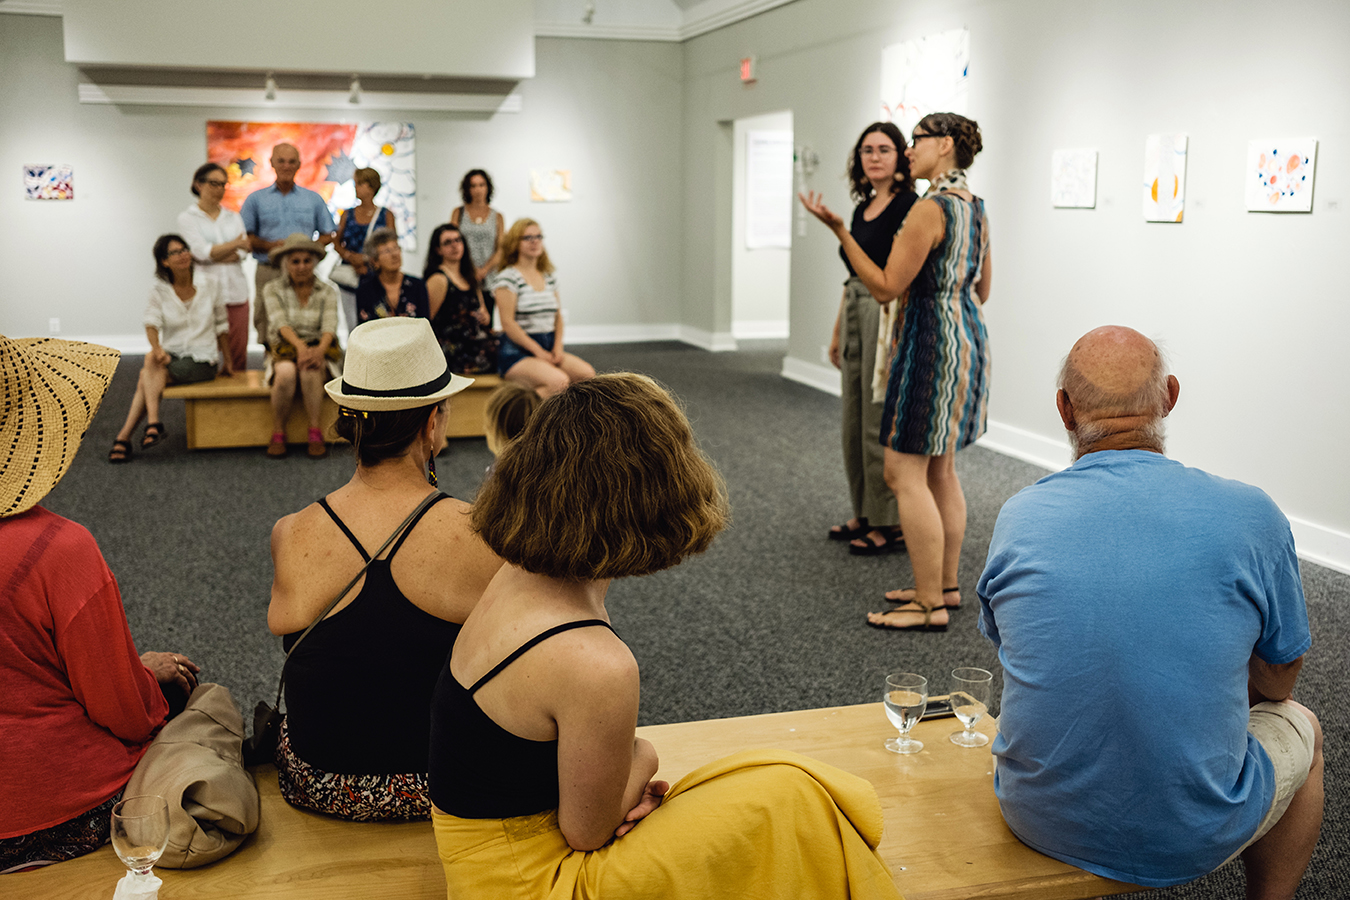 Artist talk at the opening reception